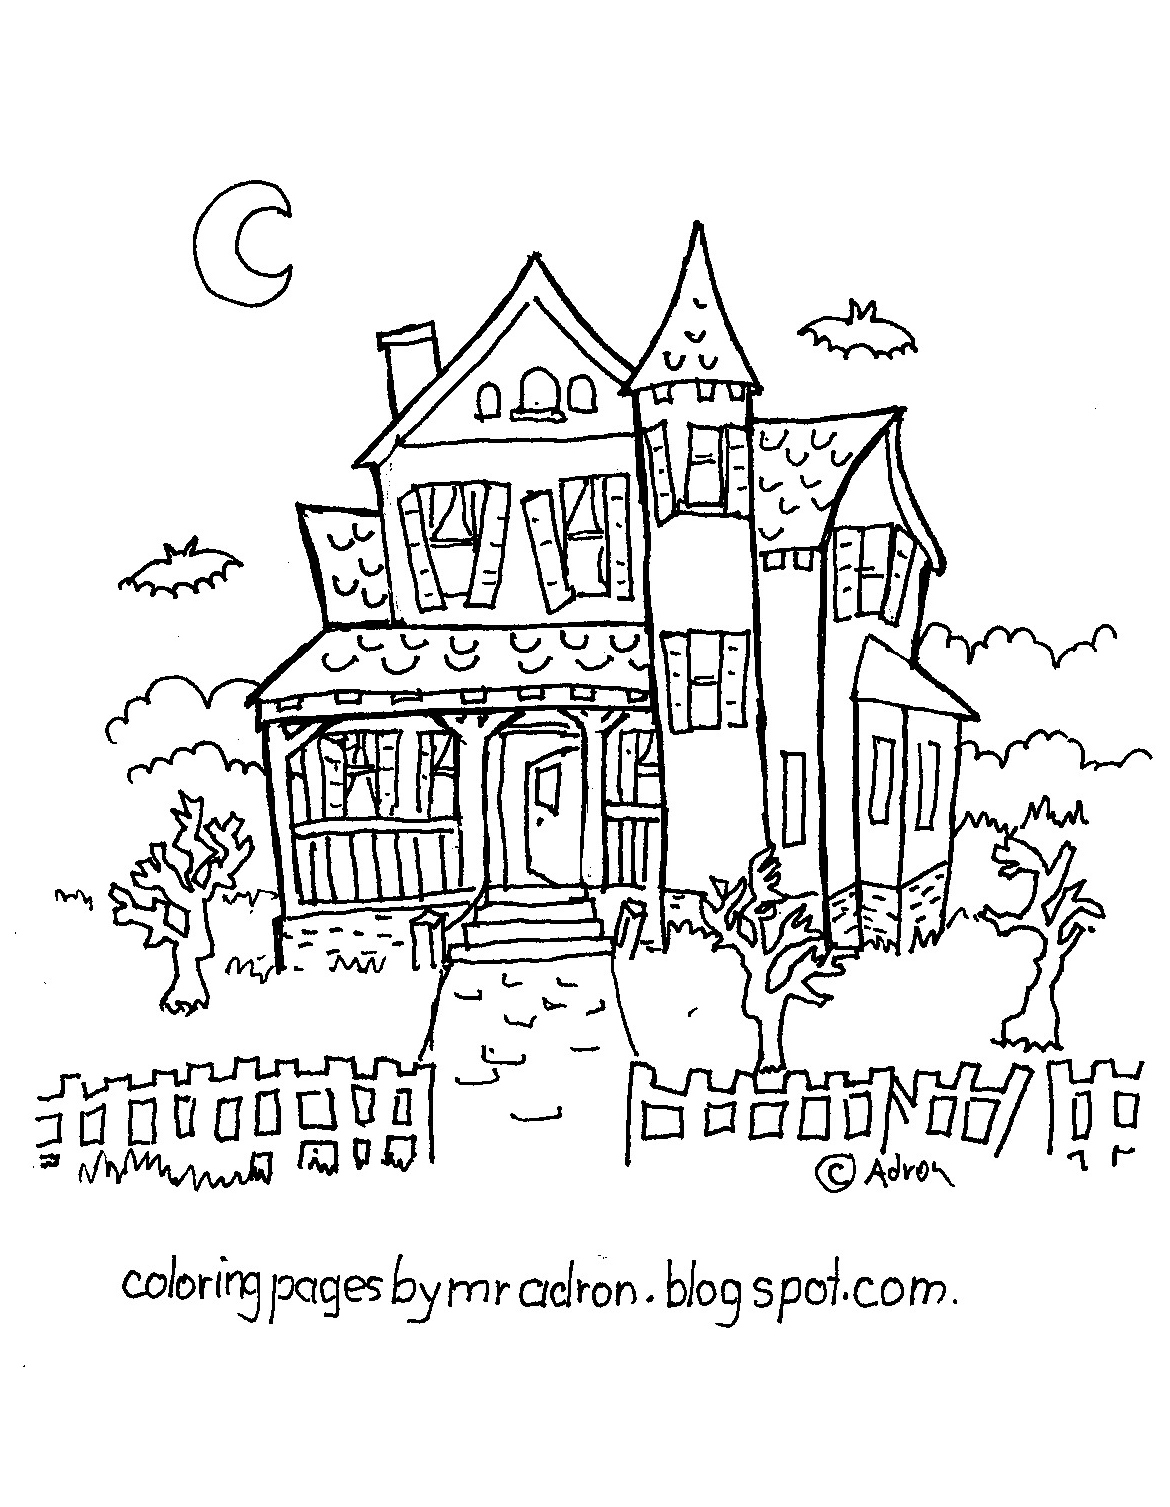 coloring pages of haunted houses haunted house coloring pages getcoloringpagescom of coloring houses haunted pages